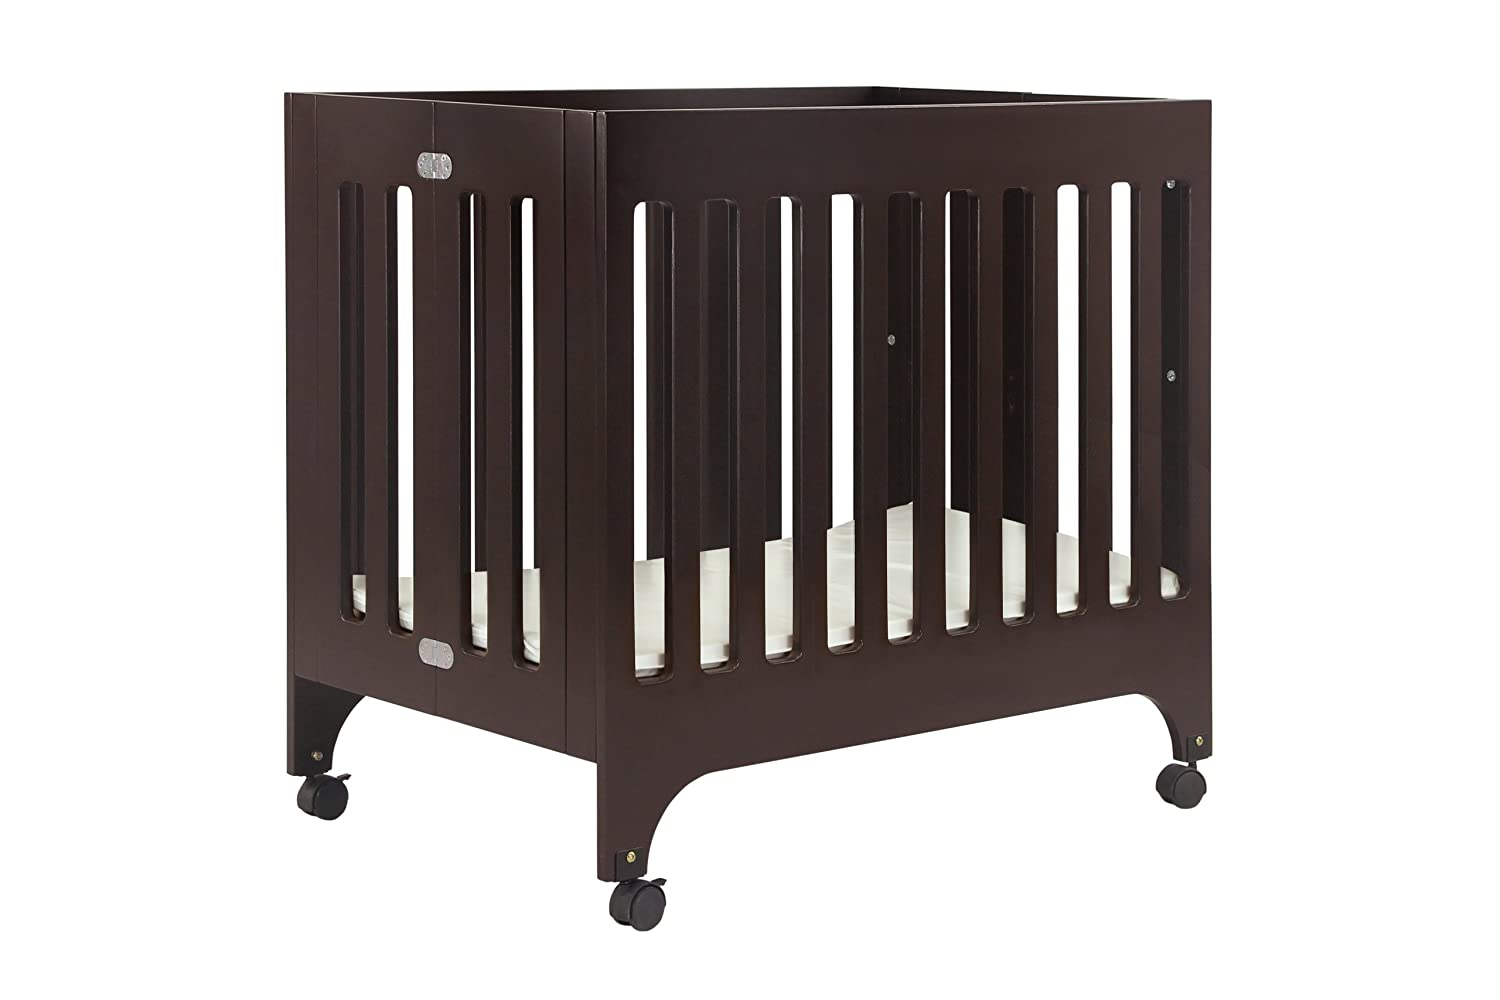 amazoncom  babyletto grayson mini crib with mattress pad  - amazoncom  babyletto grayson mini crib with mattress pad espresso(discontinued by manufacturer)  convertible cribs  baby